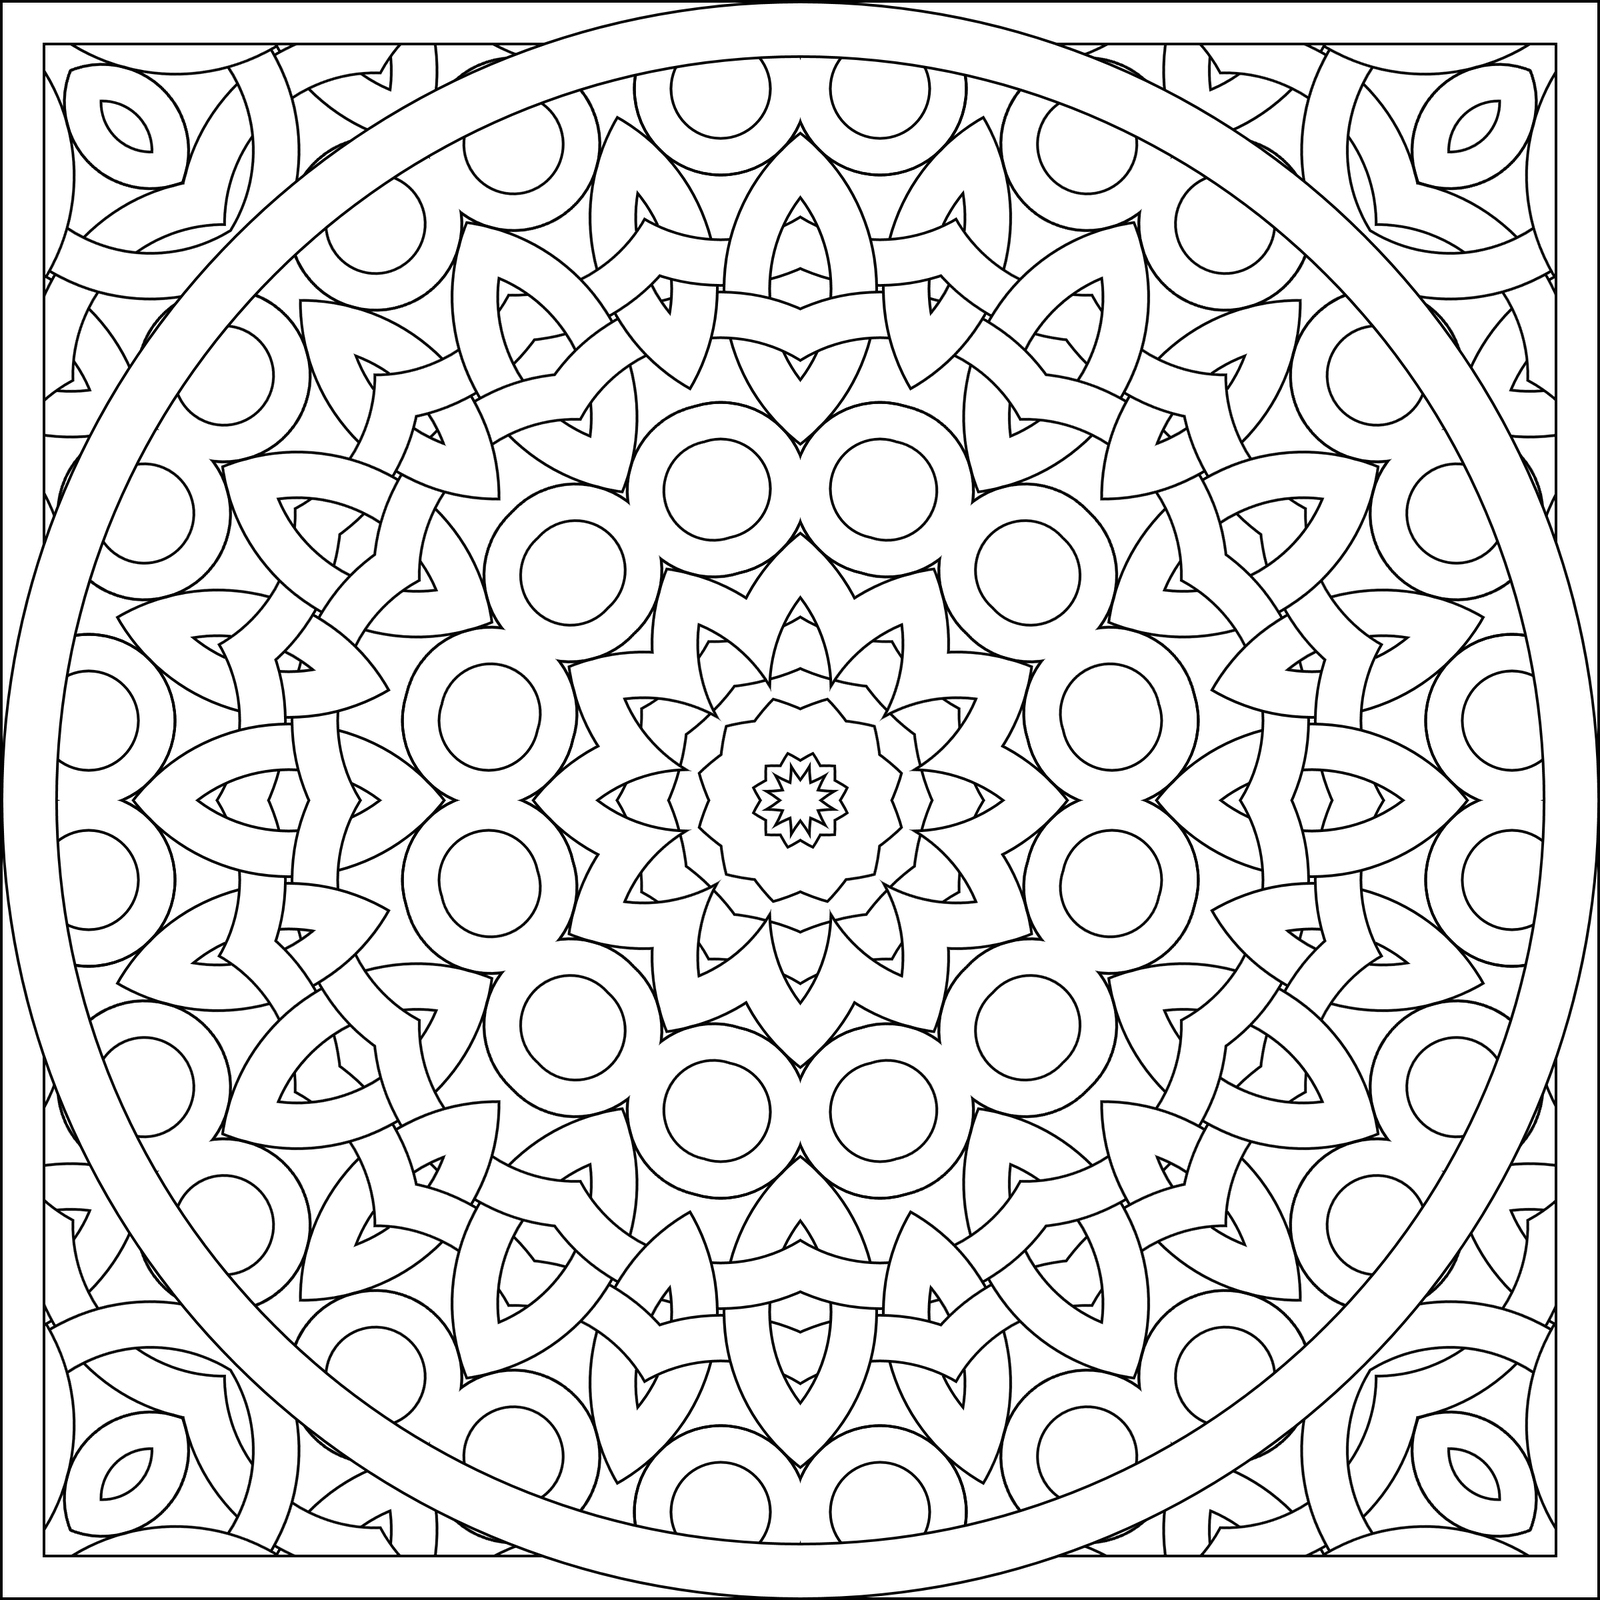 Pattern coloring pages best coloring pages for kids for Circle pattern coloring pages